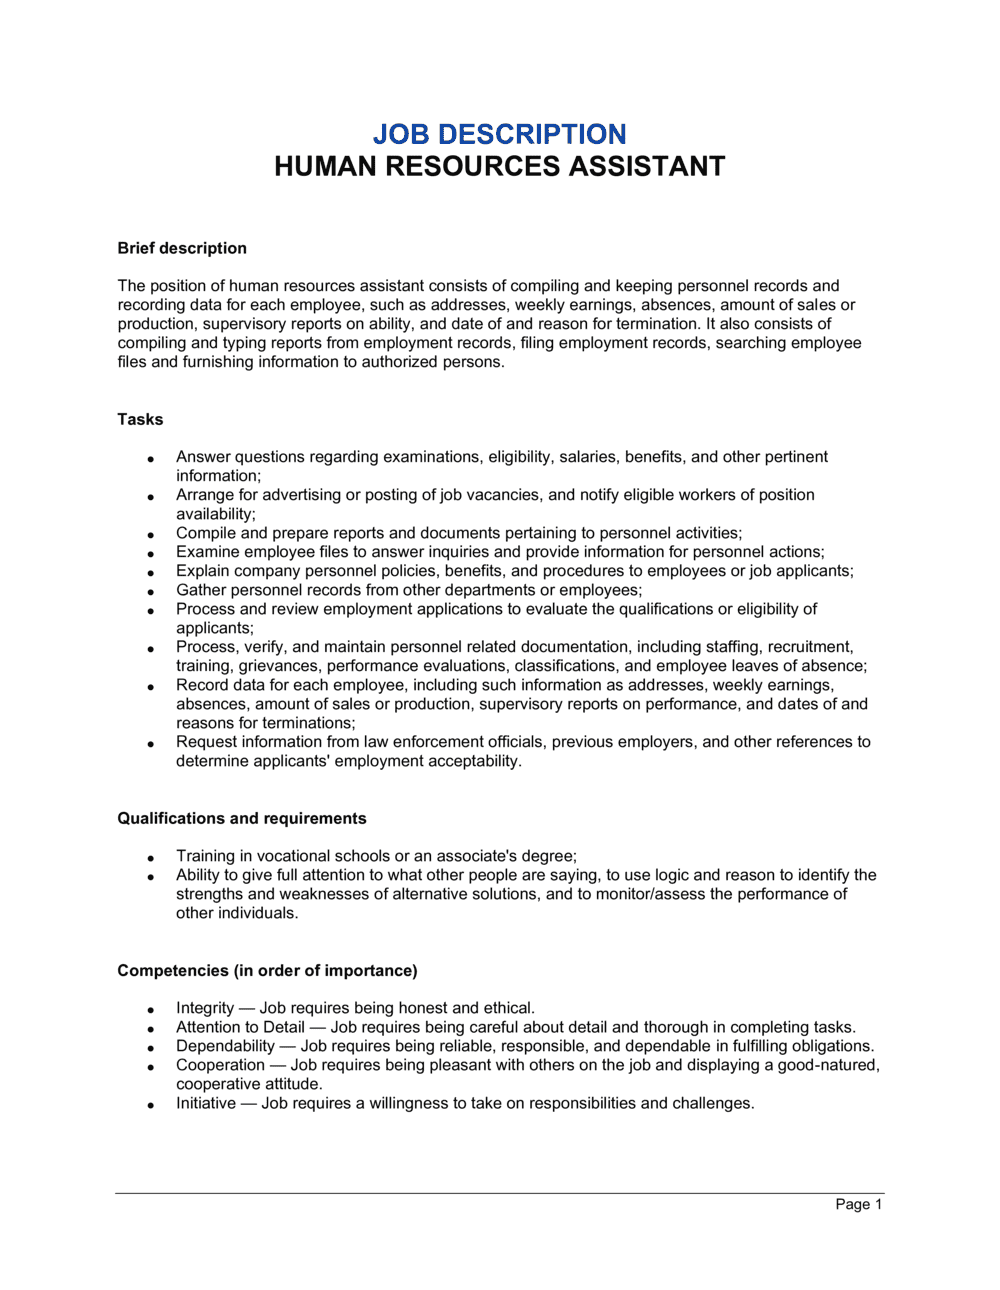 Human Resources Assistant Job Description Template | by Business-in-a-Box™